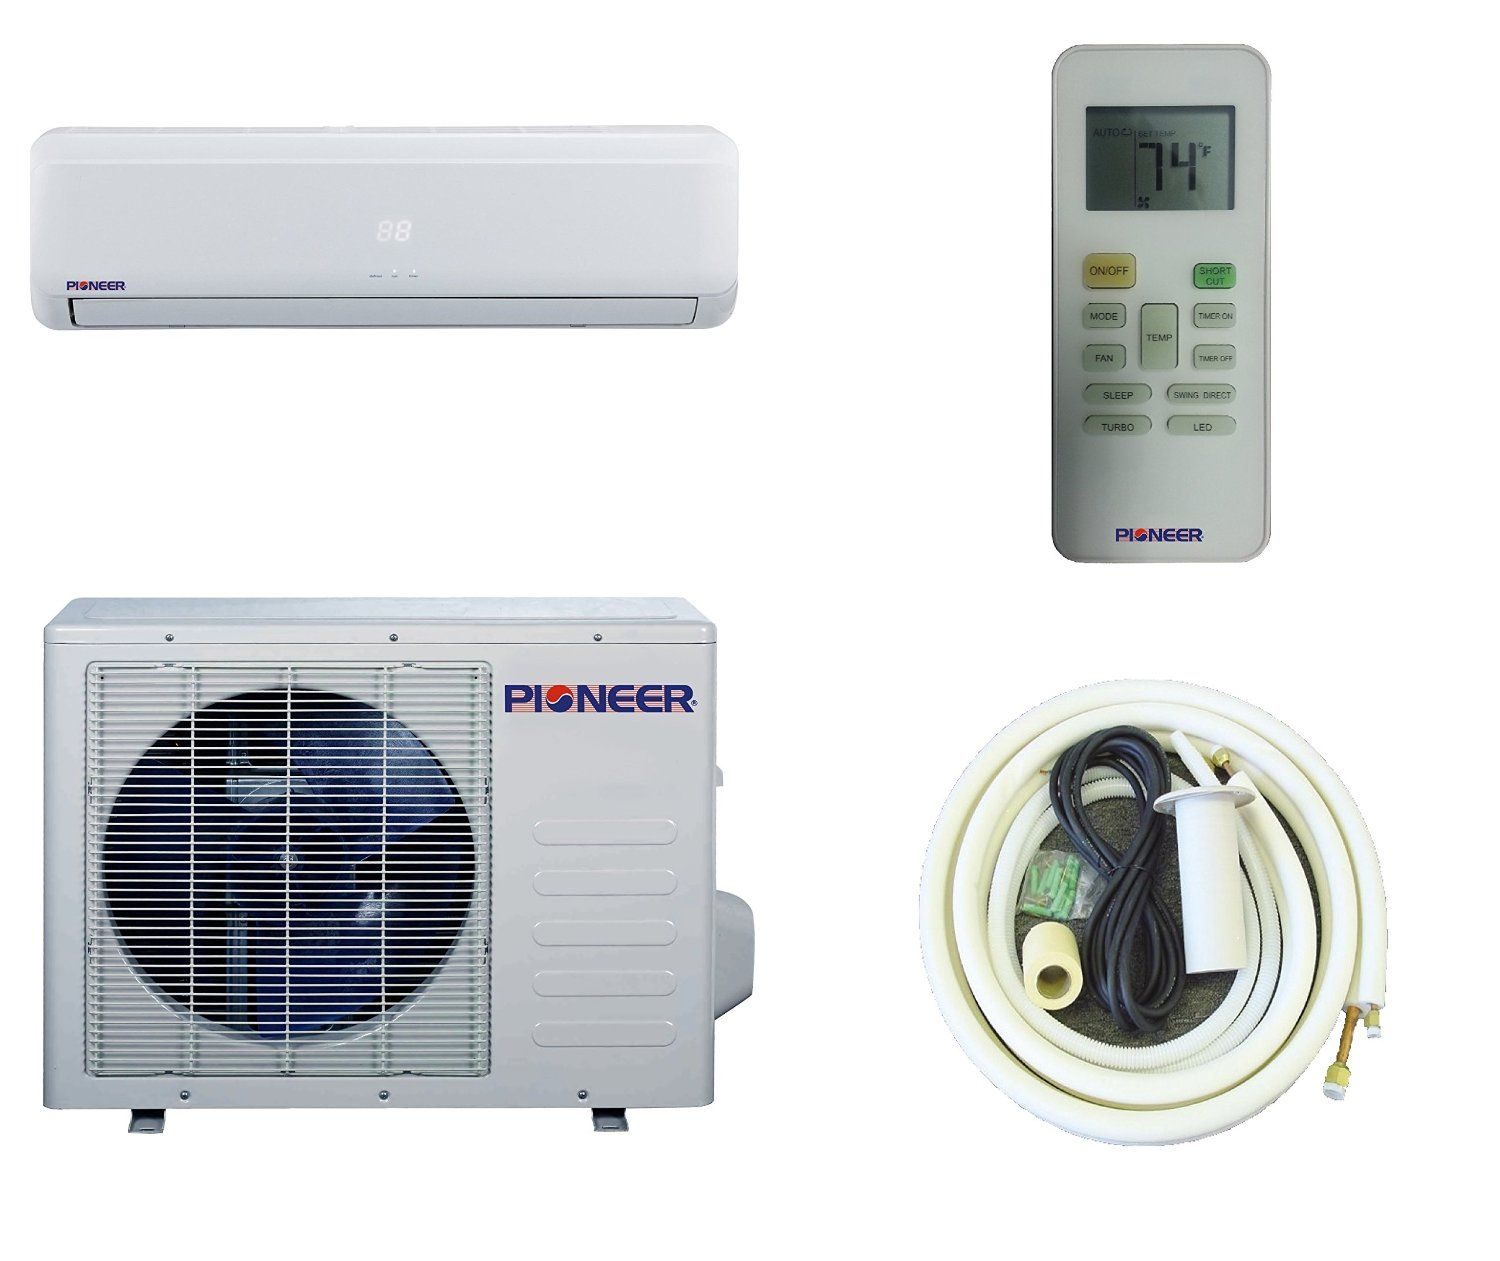 Pioneer ductless wall mount mini split for Small 1 room air conditioner